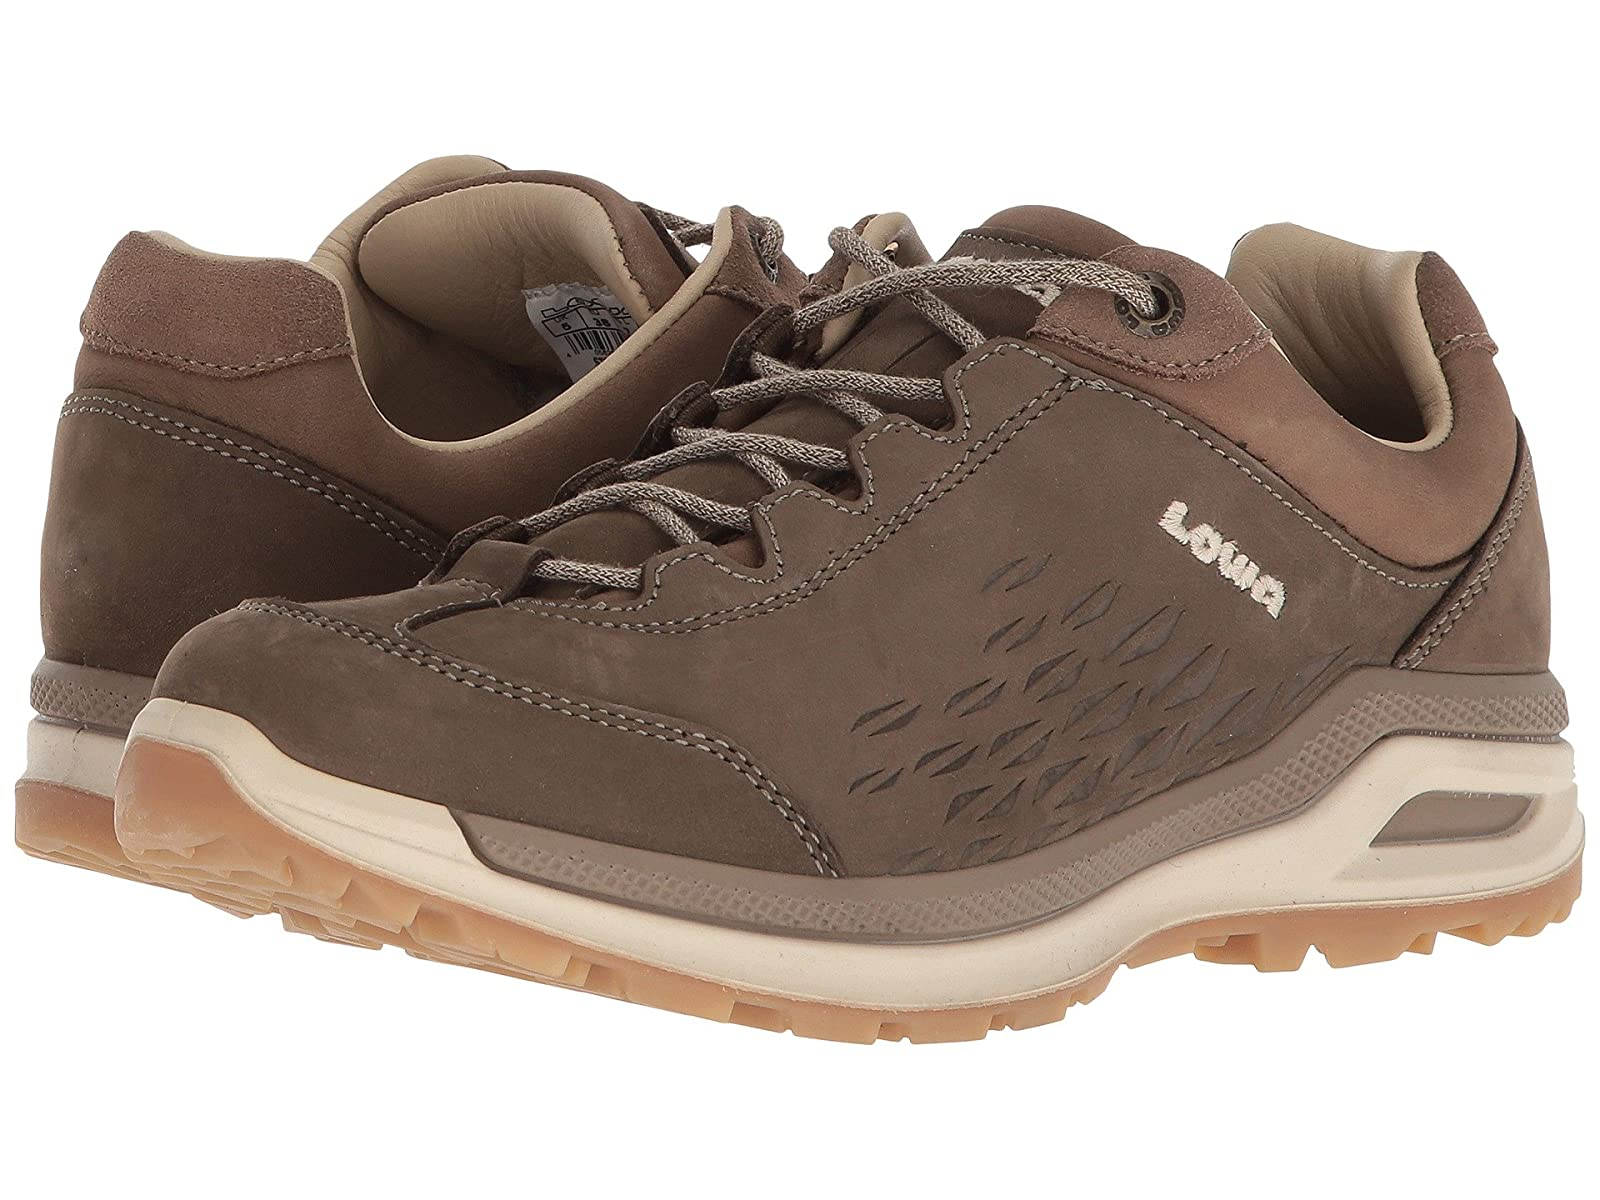 Lowa Strato Evo LL LoAtmospheric grades have affordable shoes